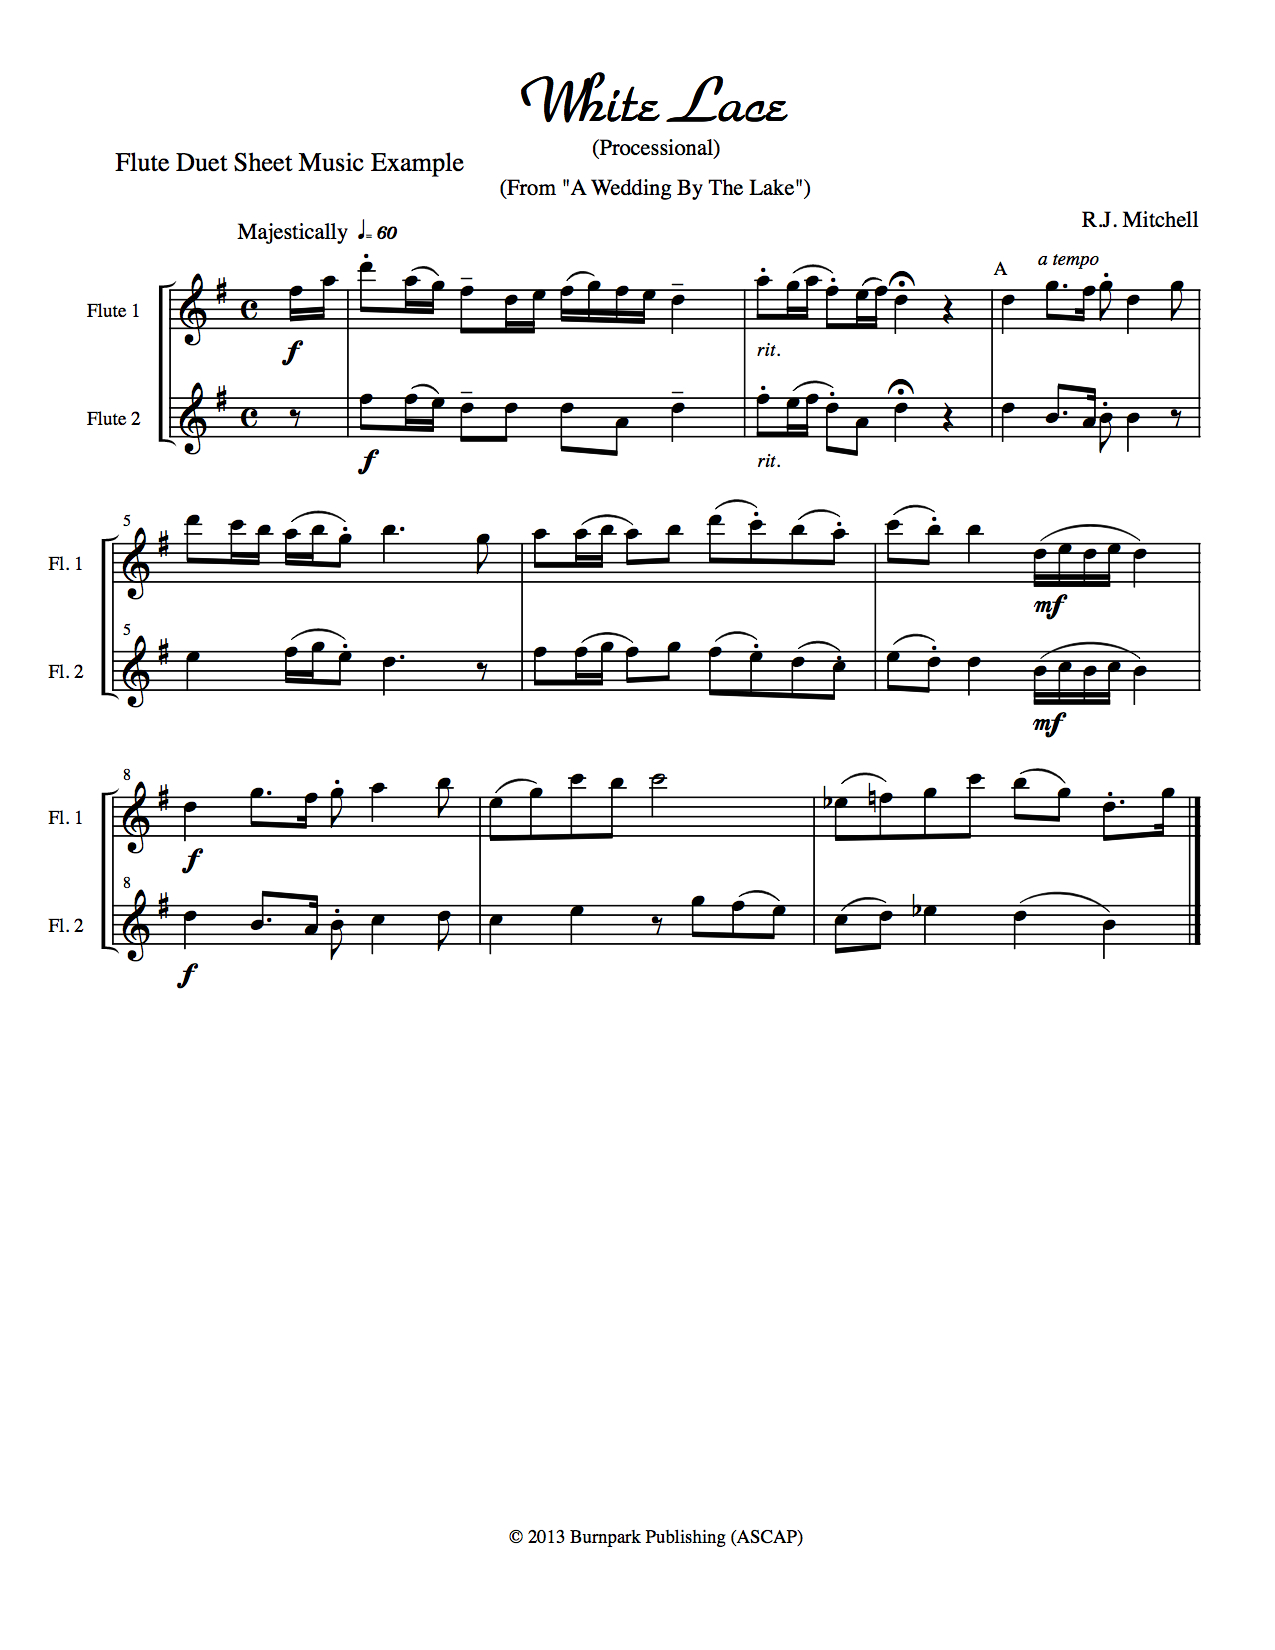 Flute Duets Parts 1 and 2 Example